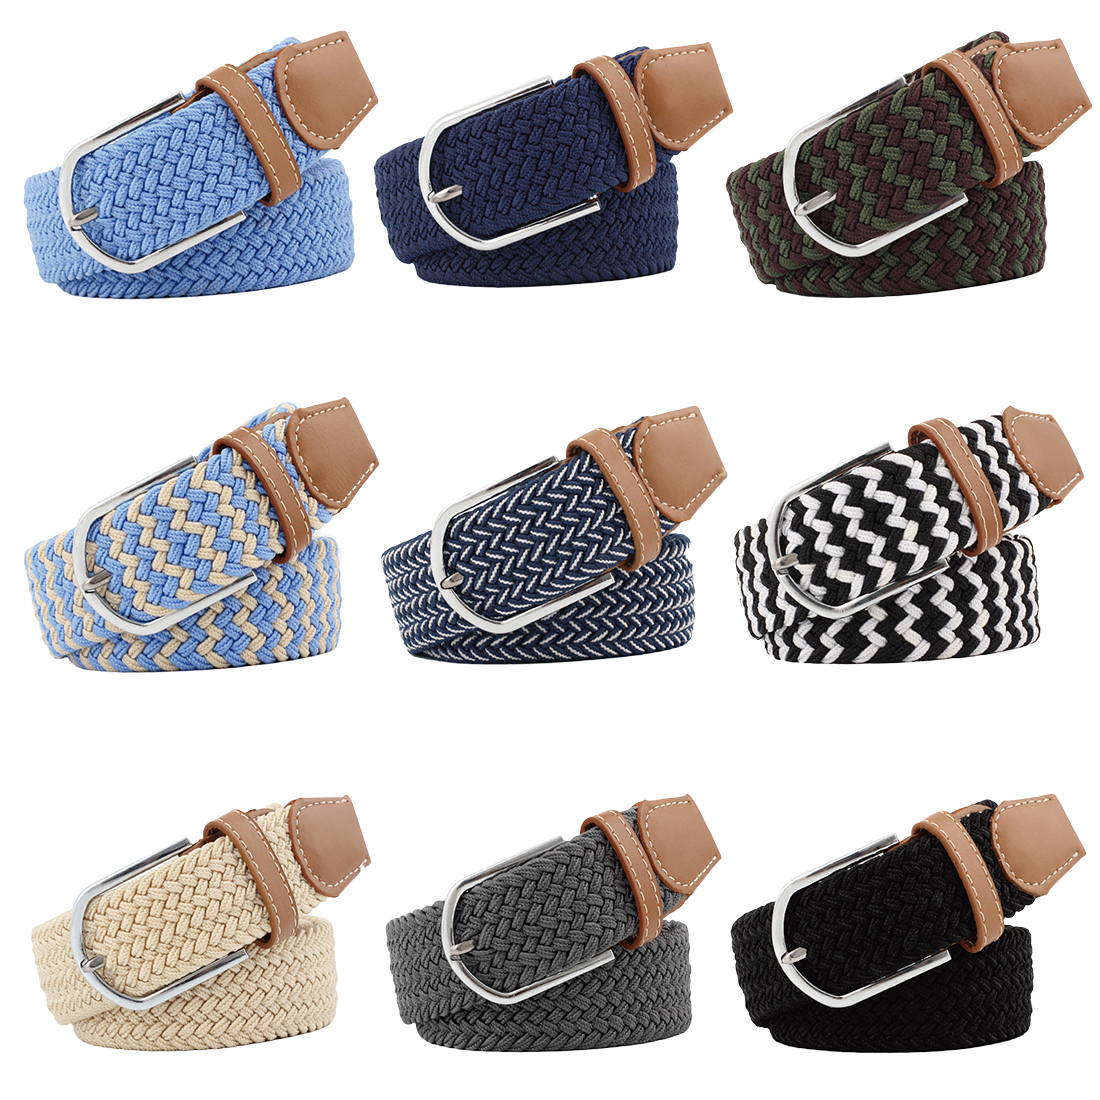 Hot Sell Elastic Fabric Braided Belts for Male & Female Candy Colors New Style Belt Accessories Waist Belts